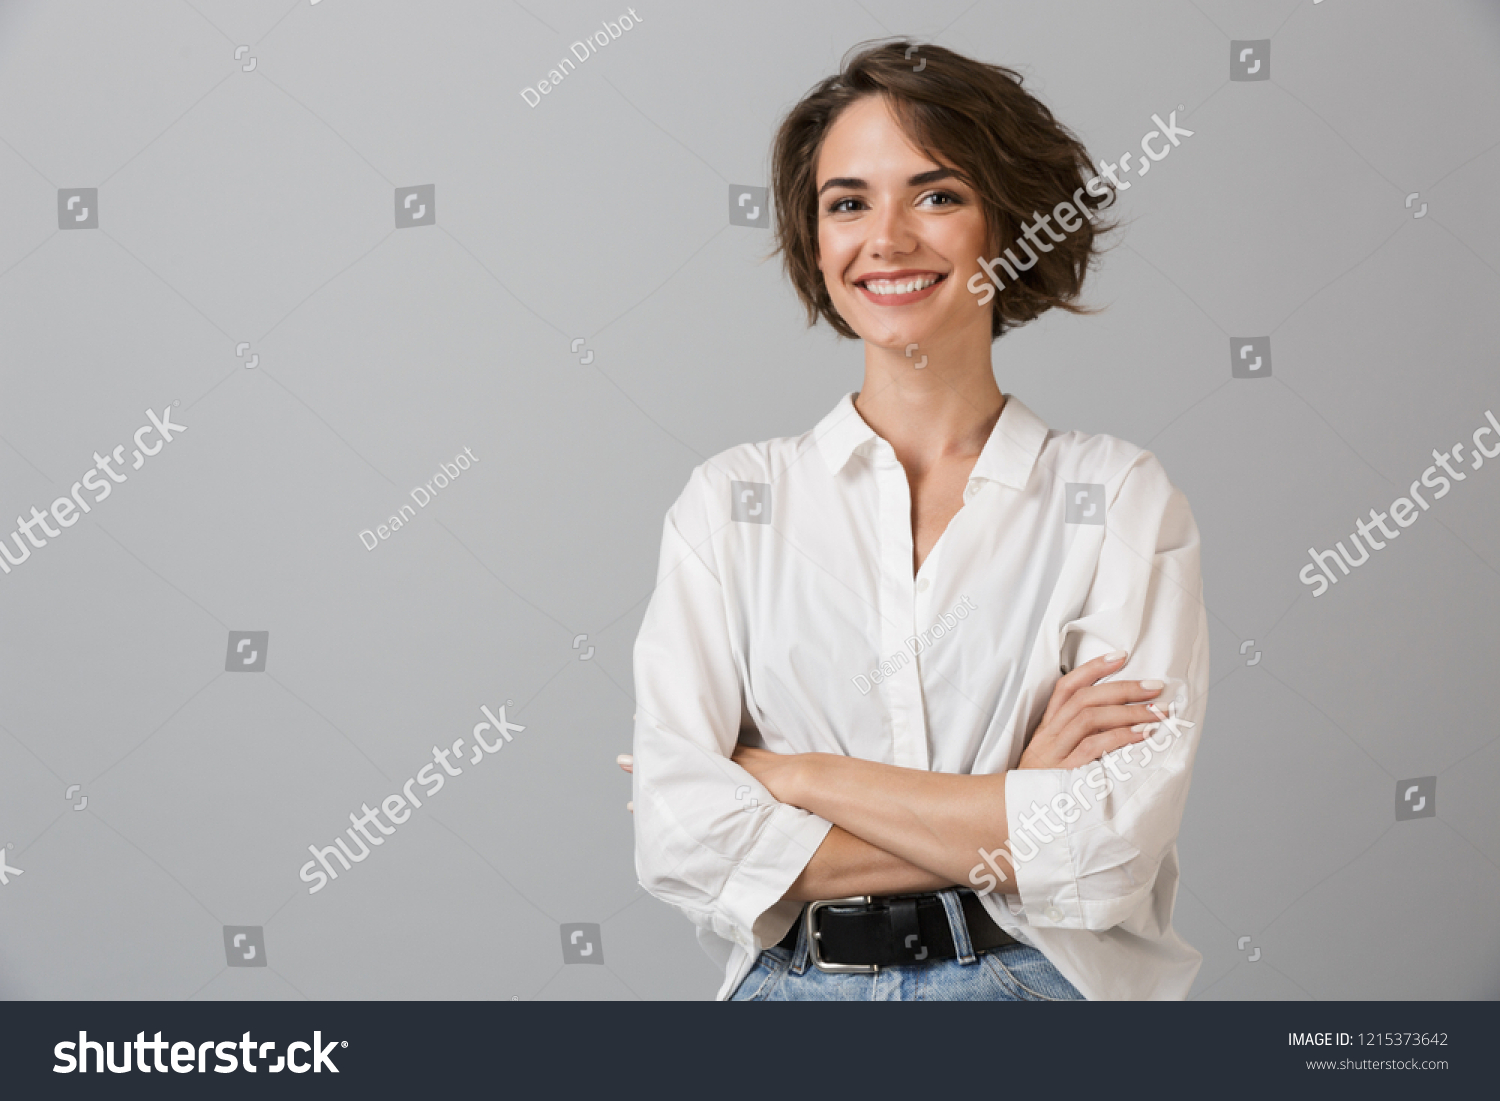 Image of happy young business woman posing isolated over grey wall background. #1215373642